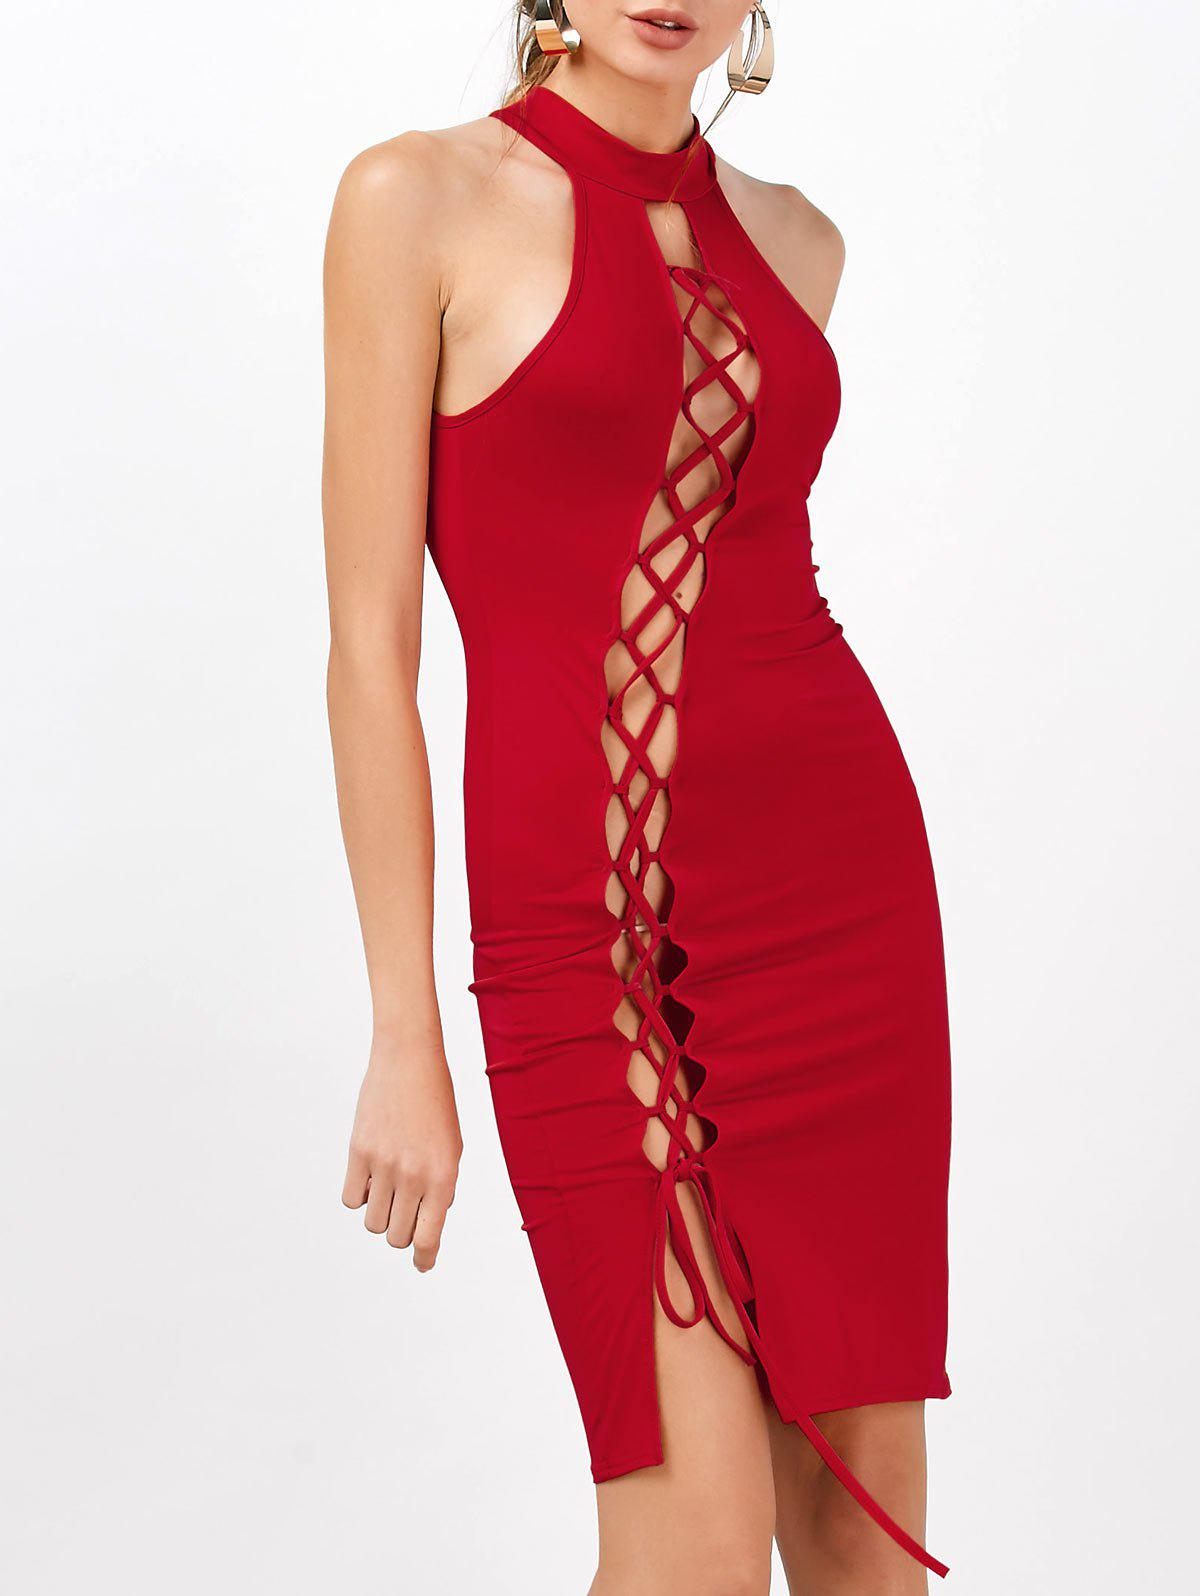 Criss Cross Sleeveless Backless Club Bodycon Dress - Rouge S